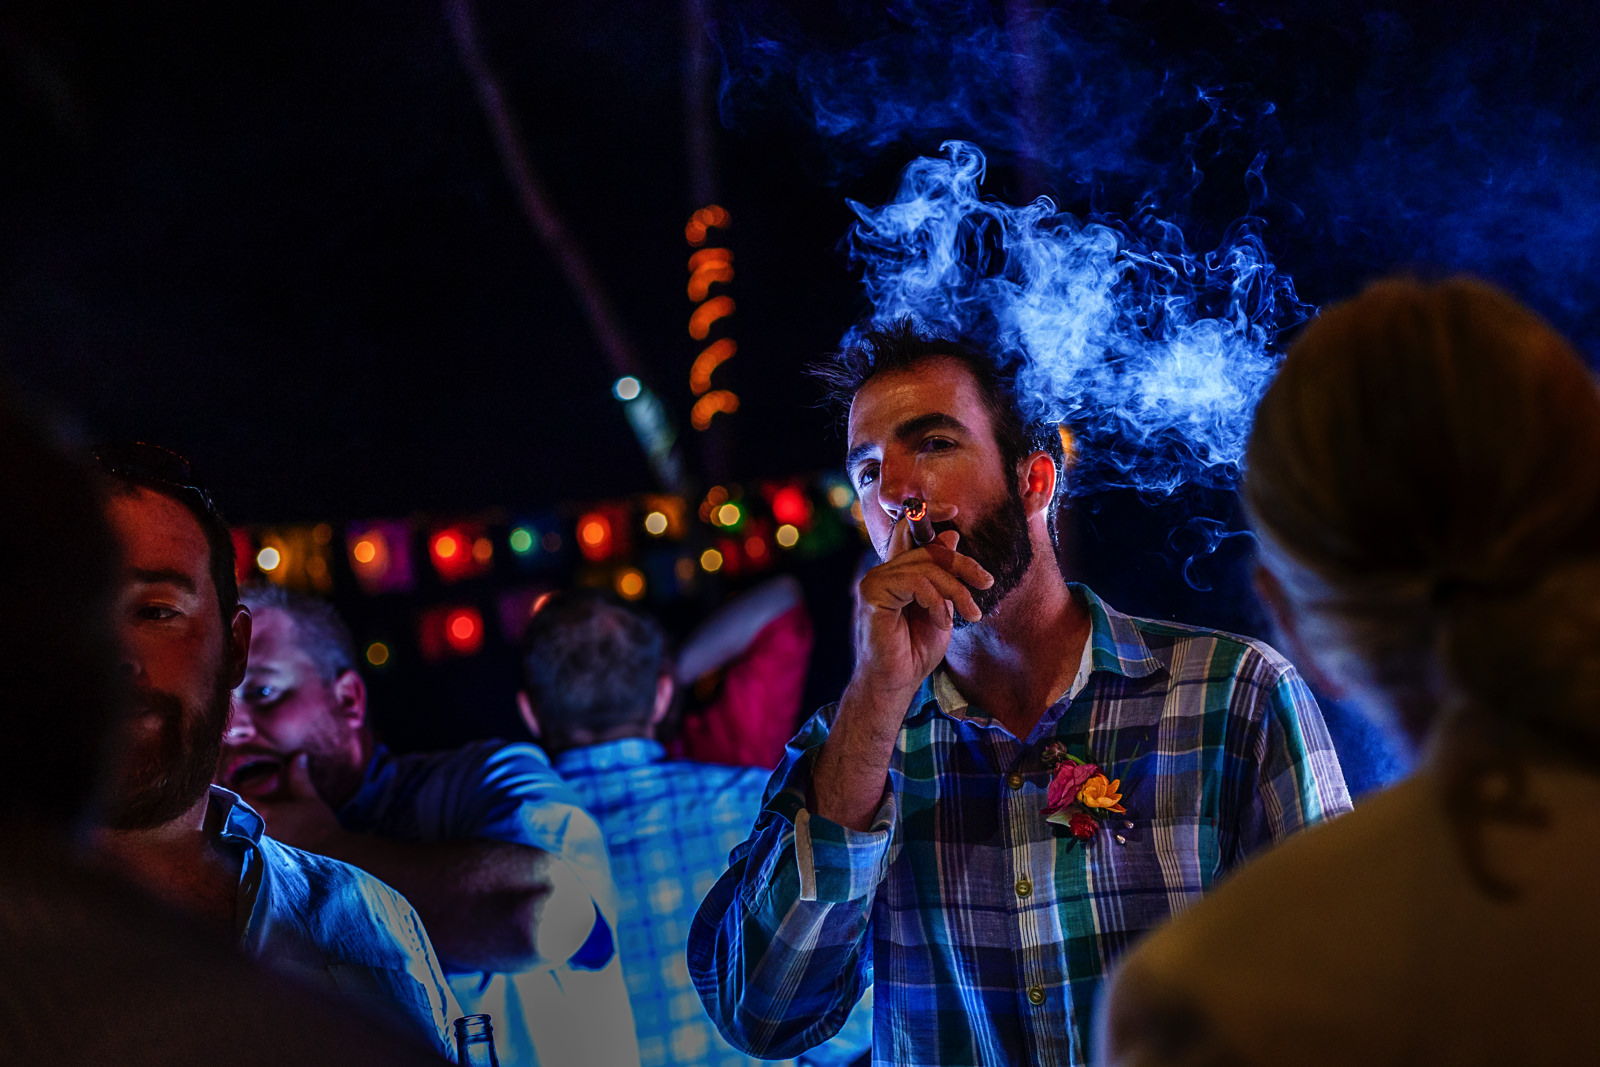 Groom smoking a cigar at the bar with friends